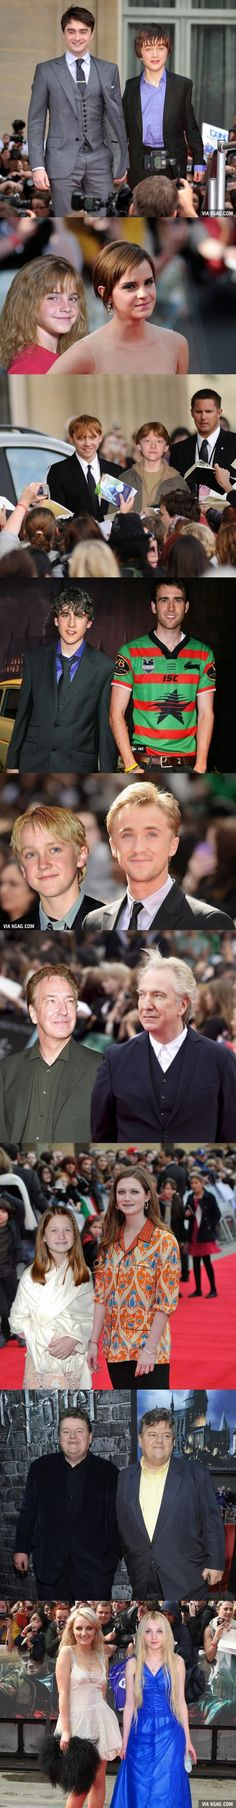 "Then Vs. Now: The ""Harry Potter"" Cast At Their First And Last Premiere"